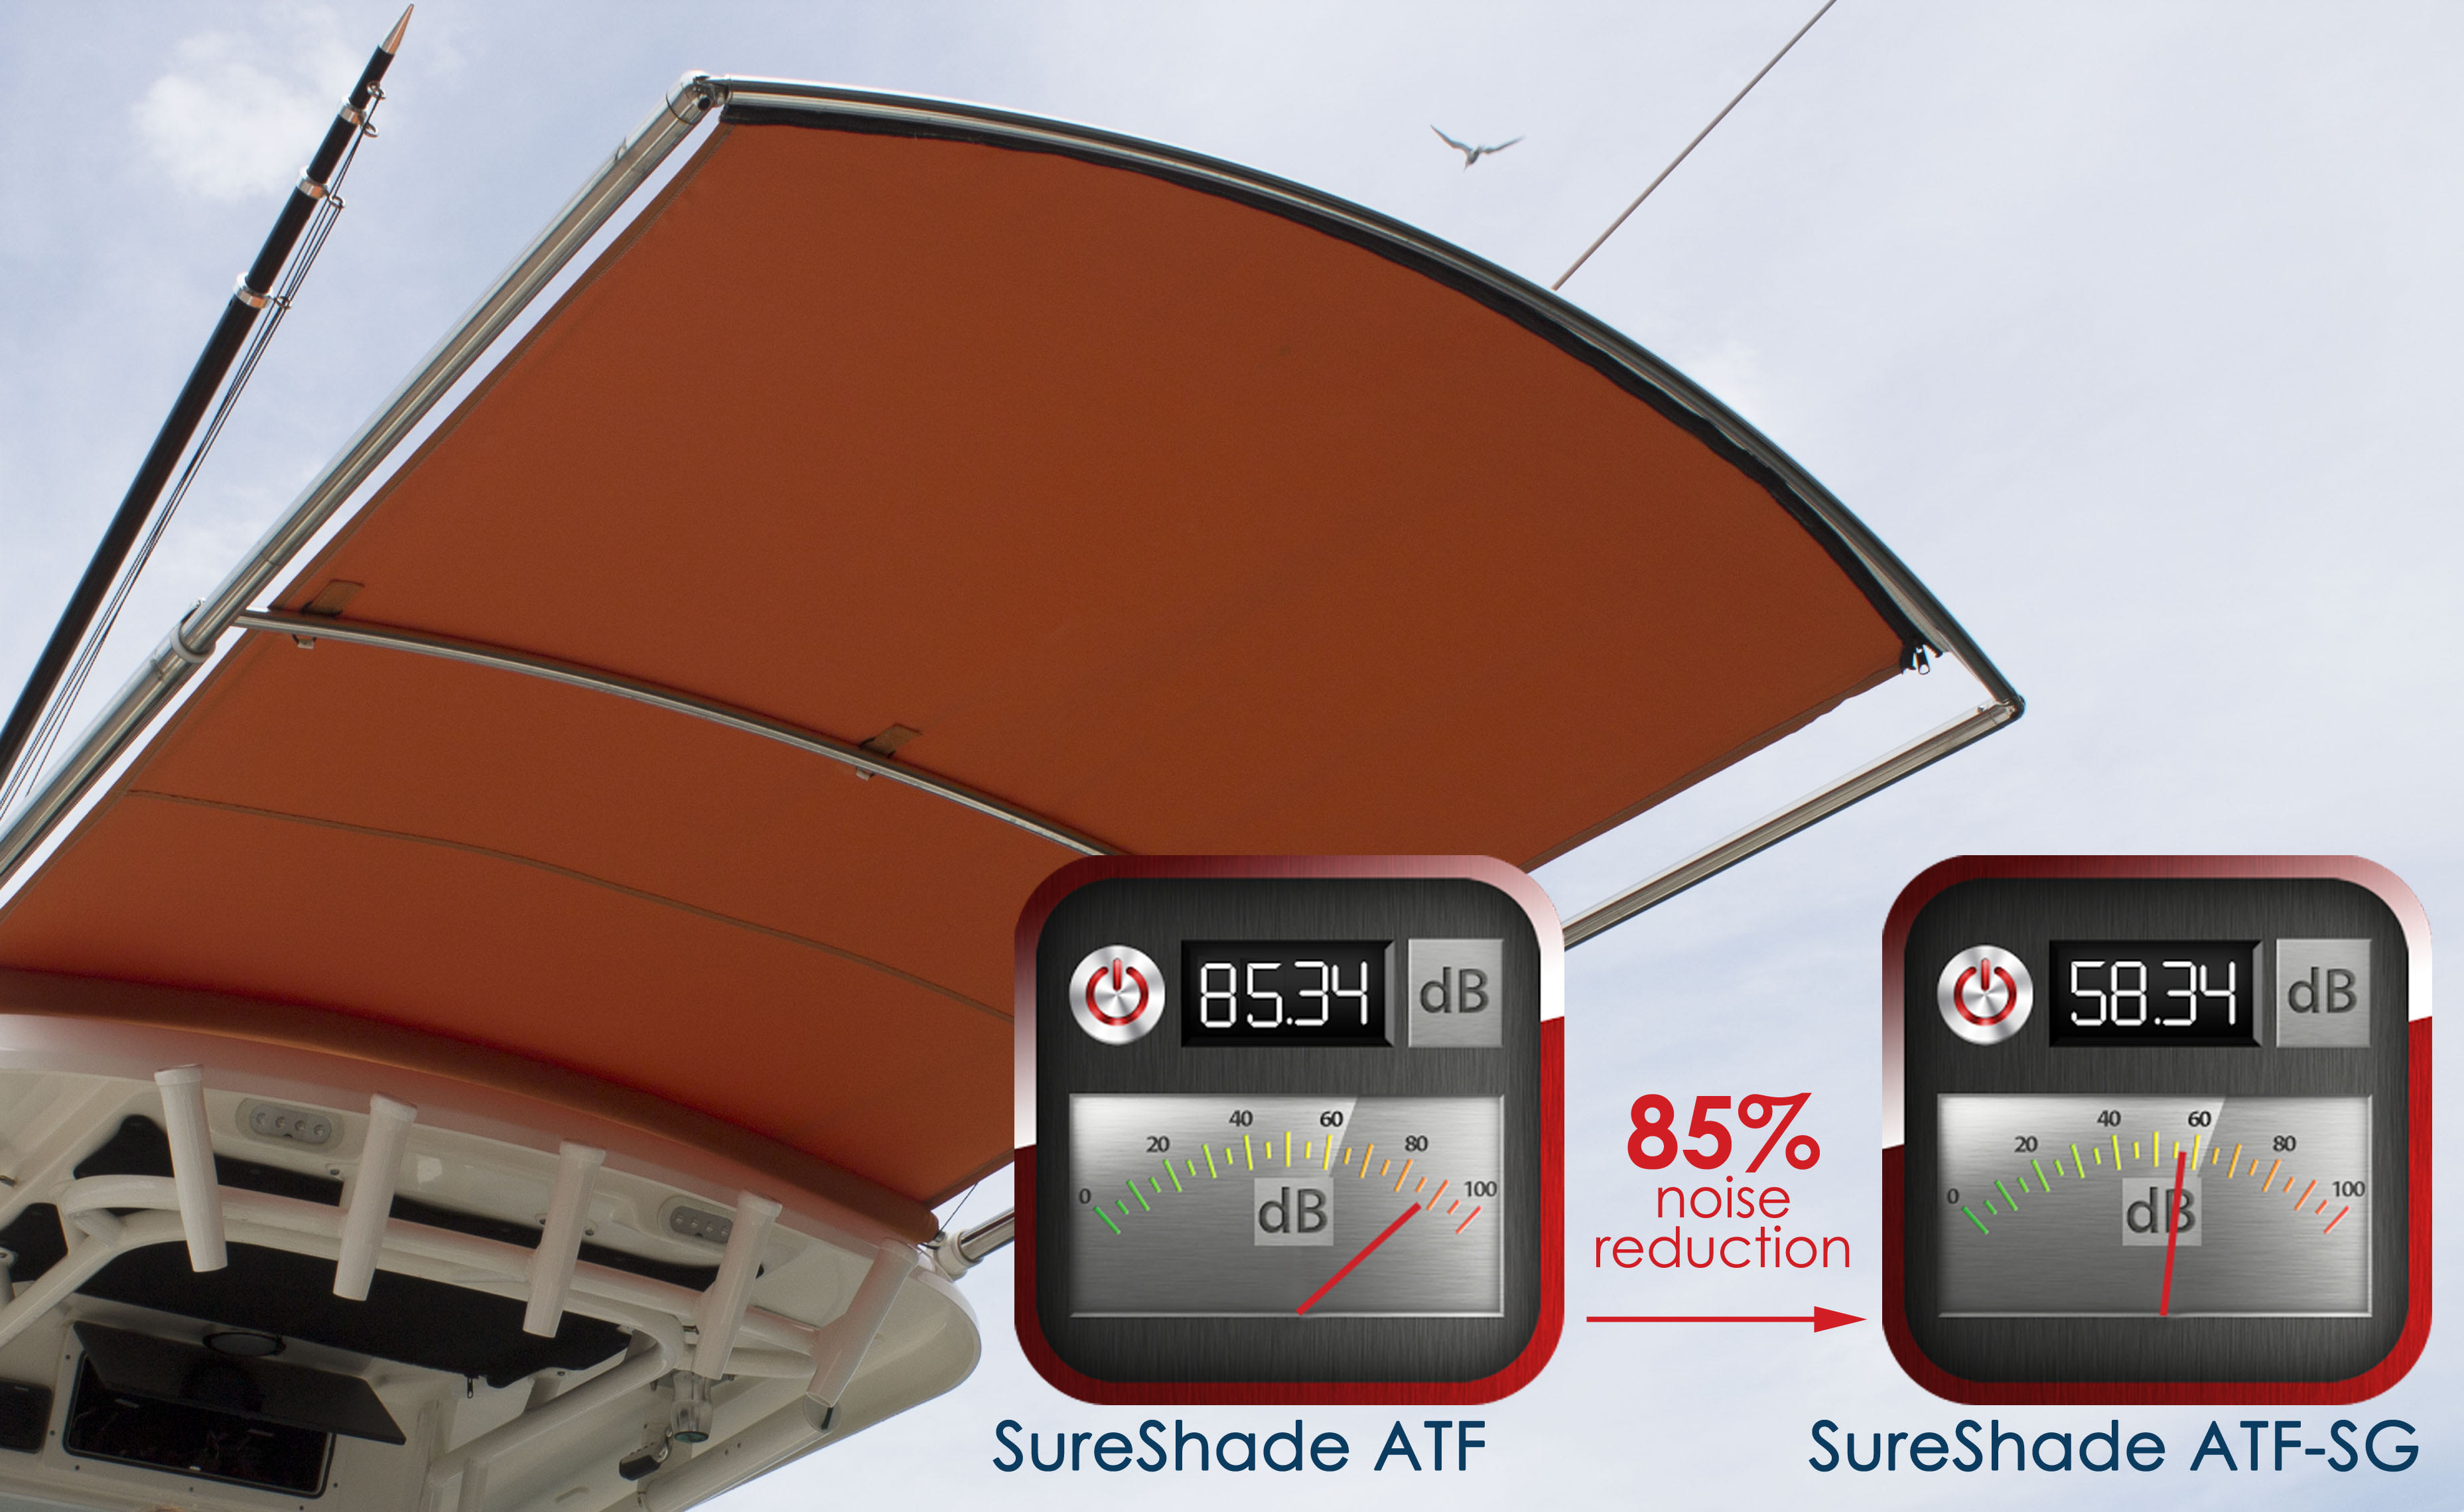 SureShade SGT 85 percent noise reduction